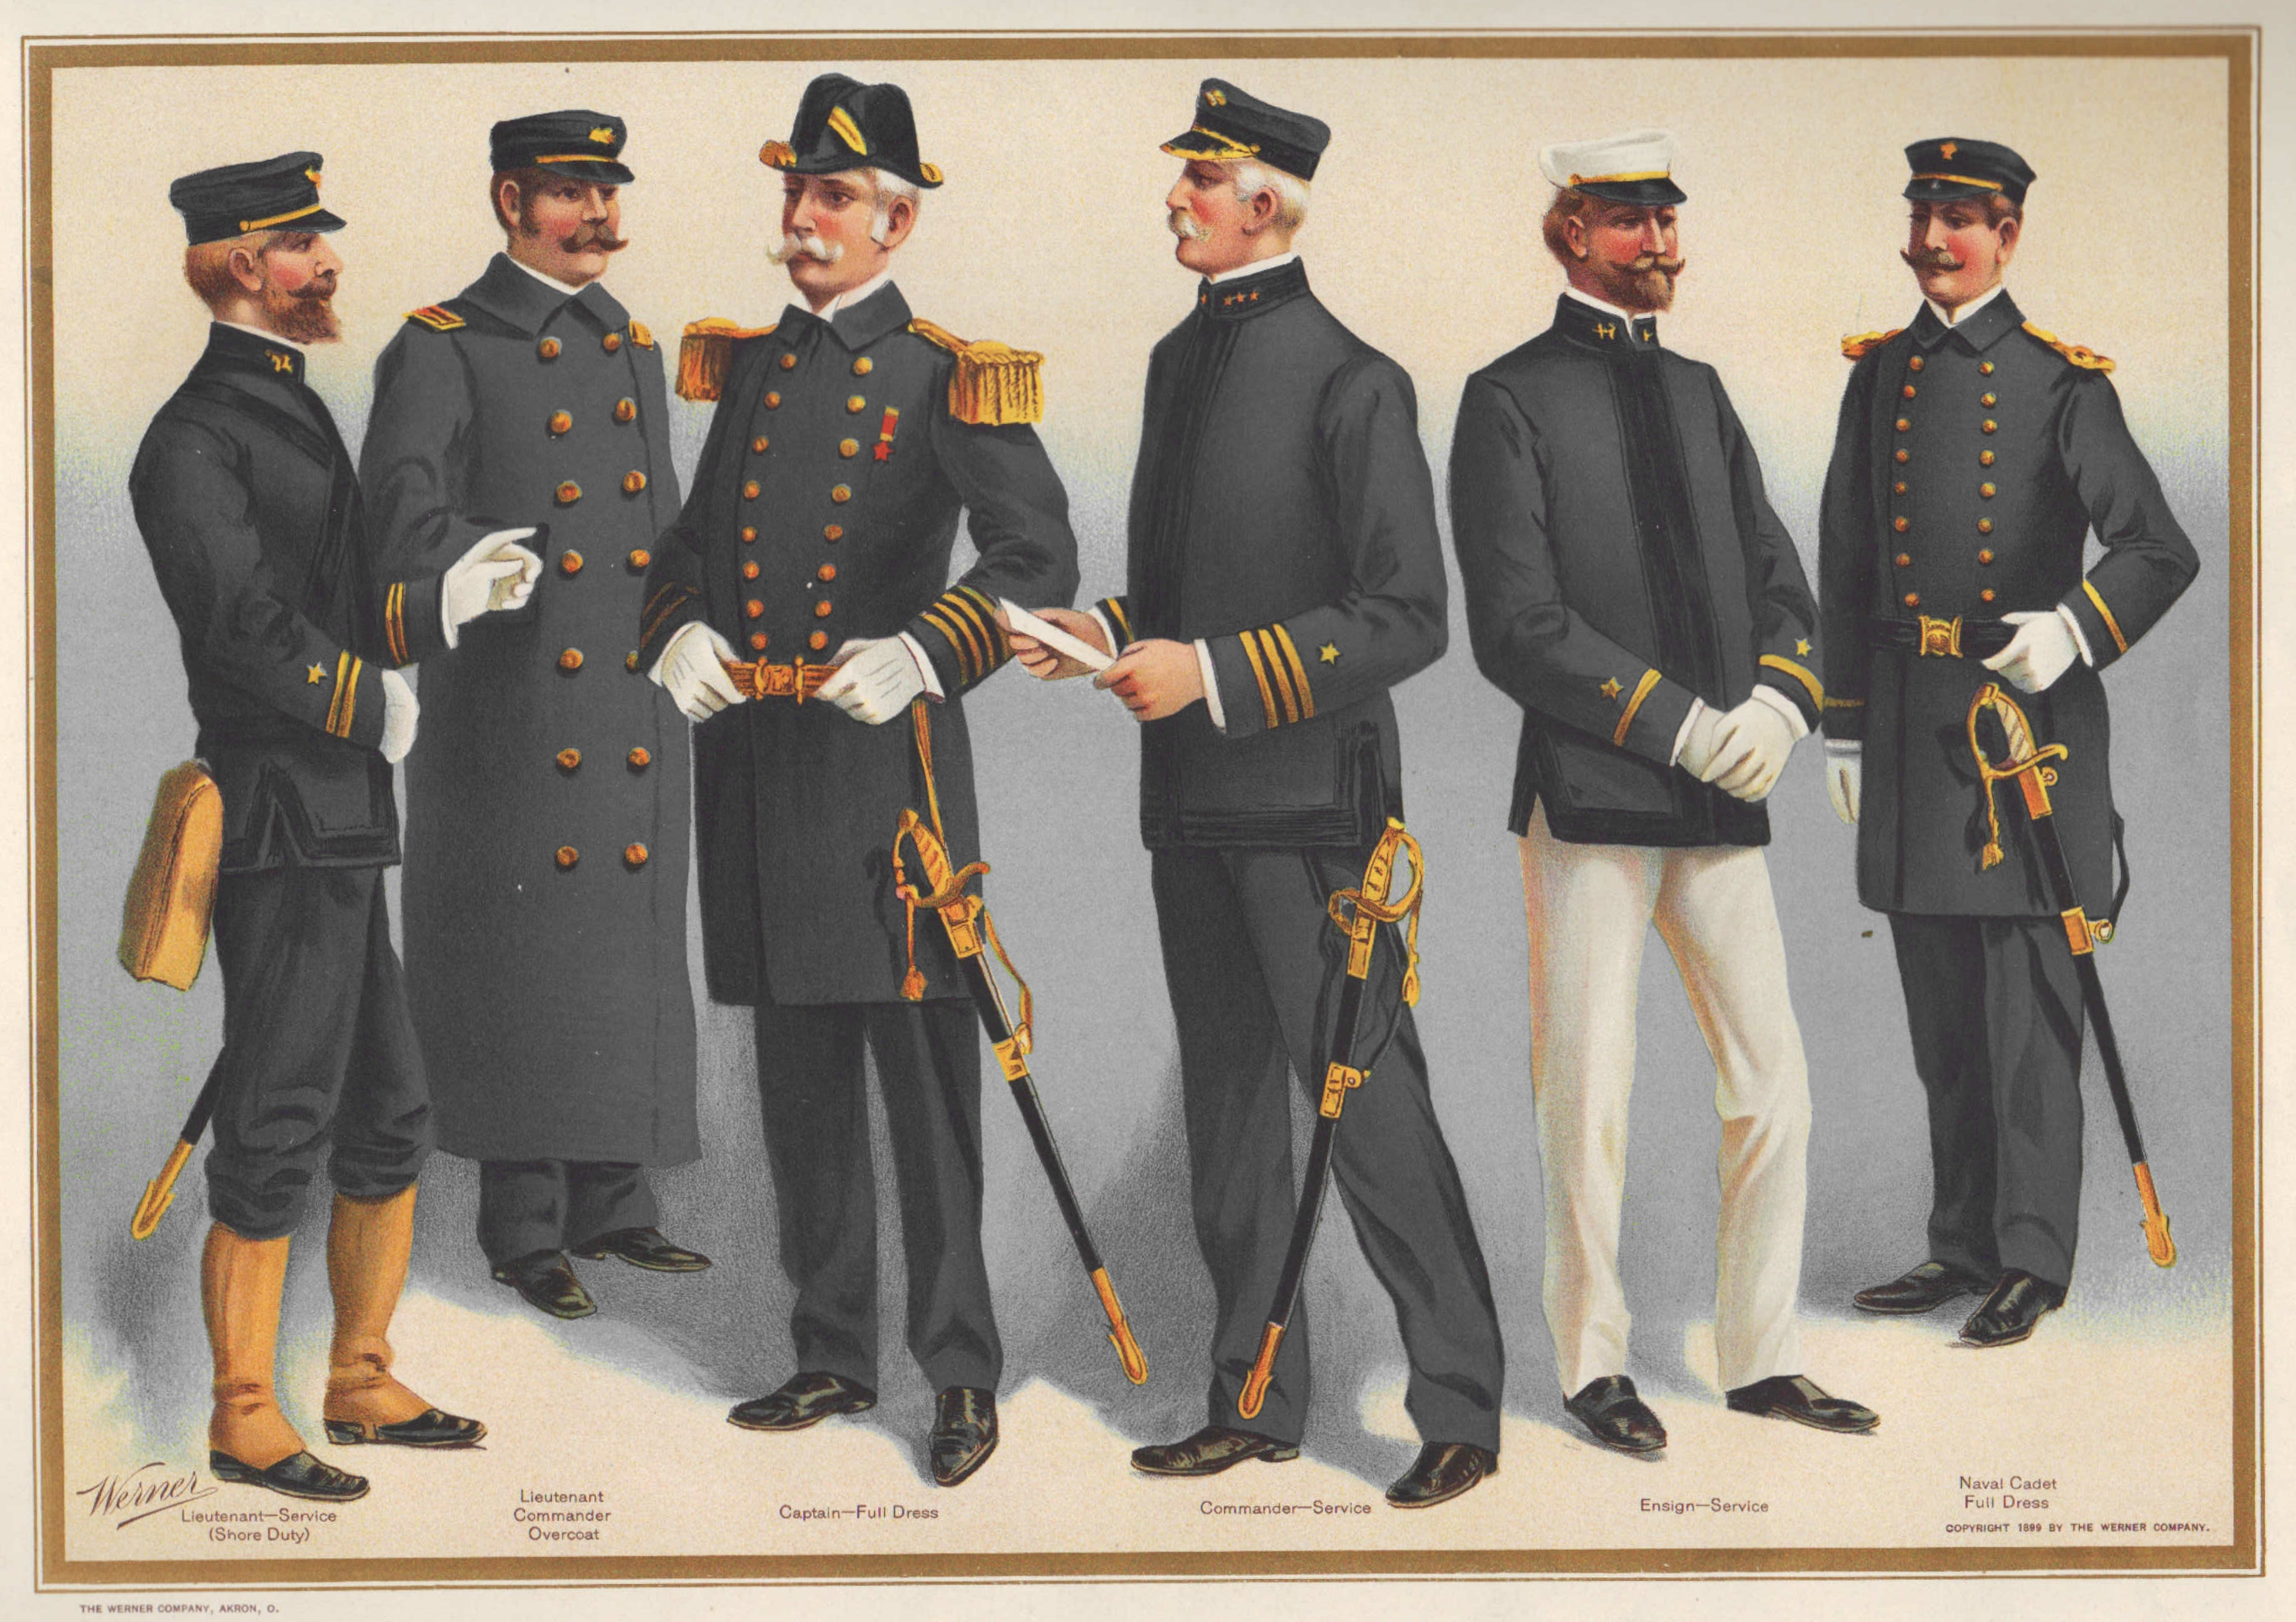 fe2592abeb4943 Uniforms of the United States Navy - Wikiwand